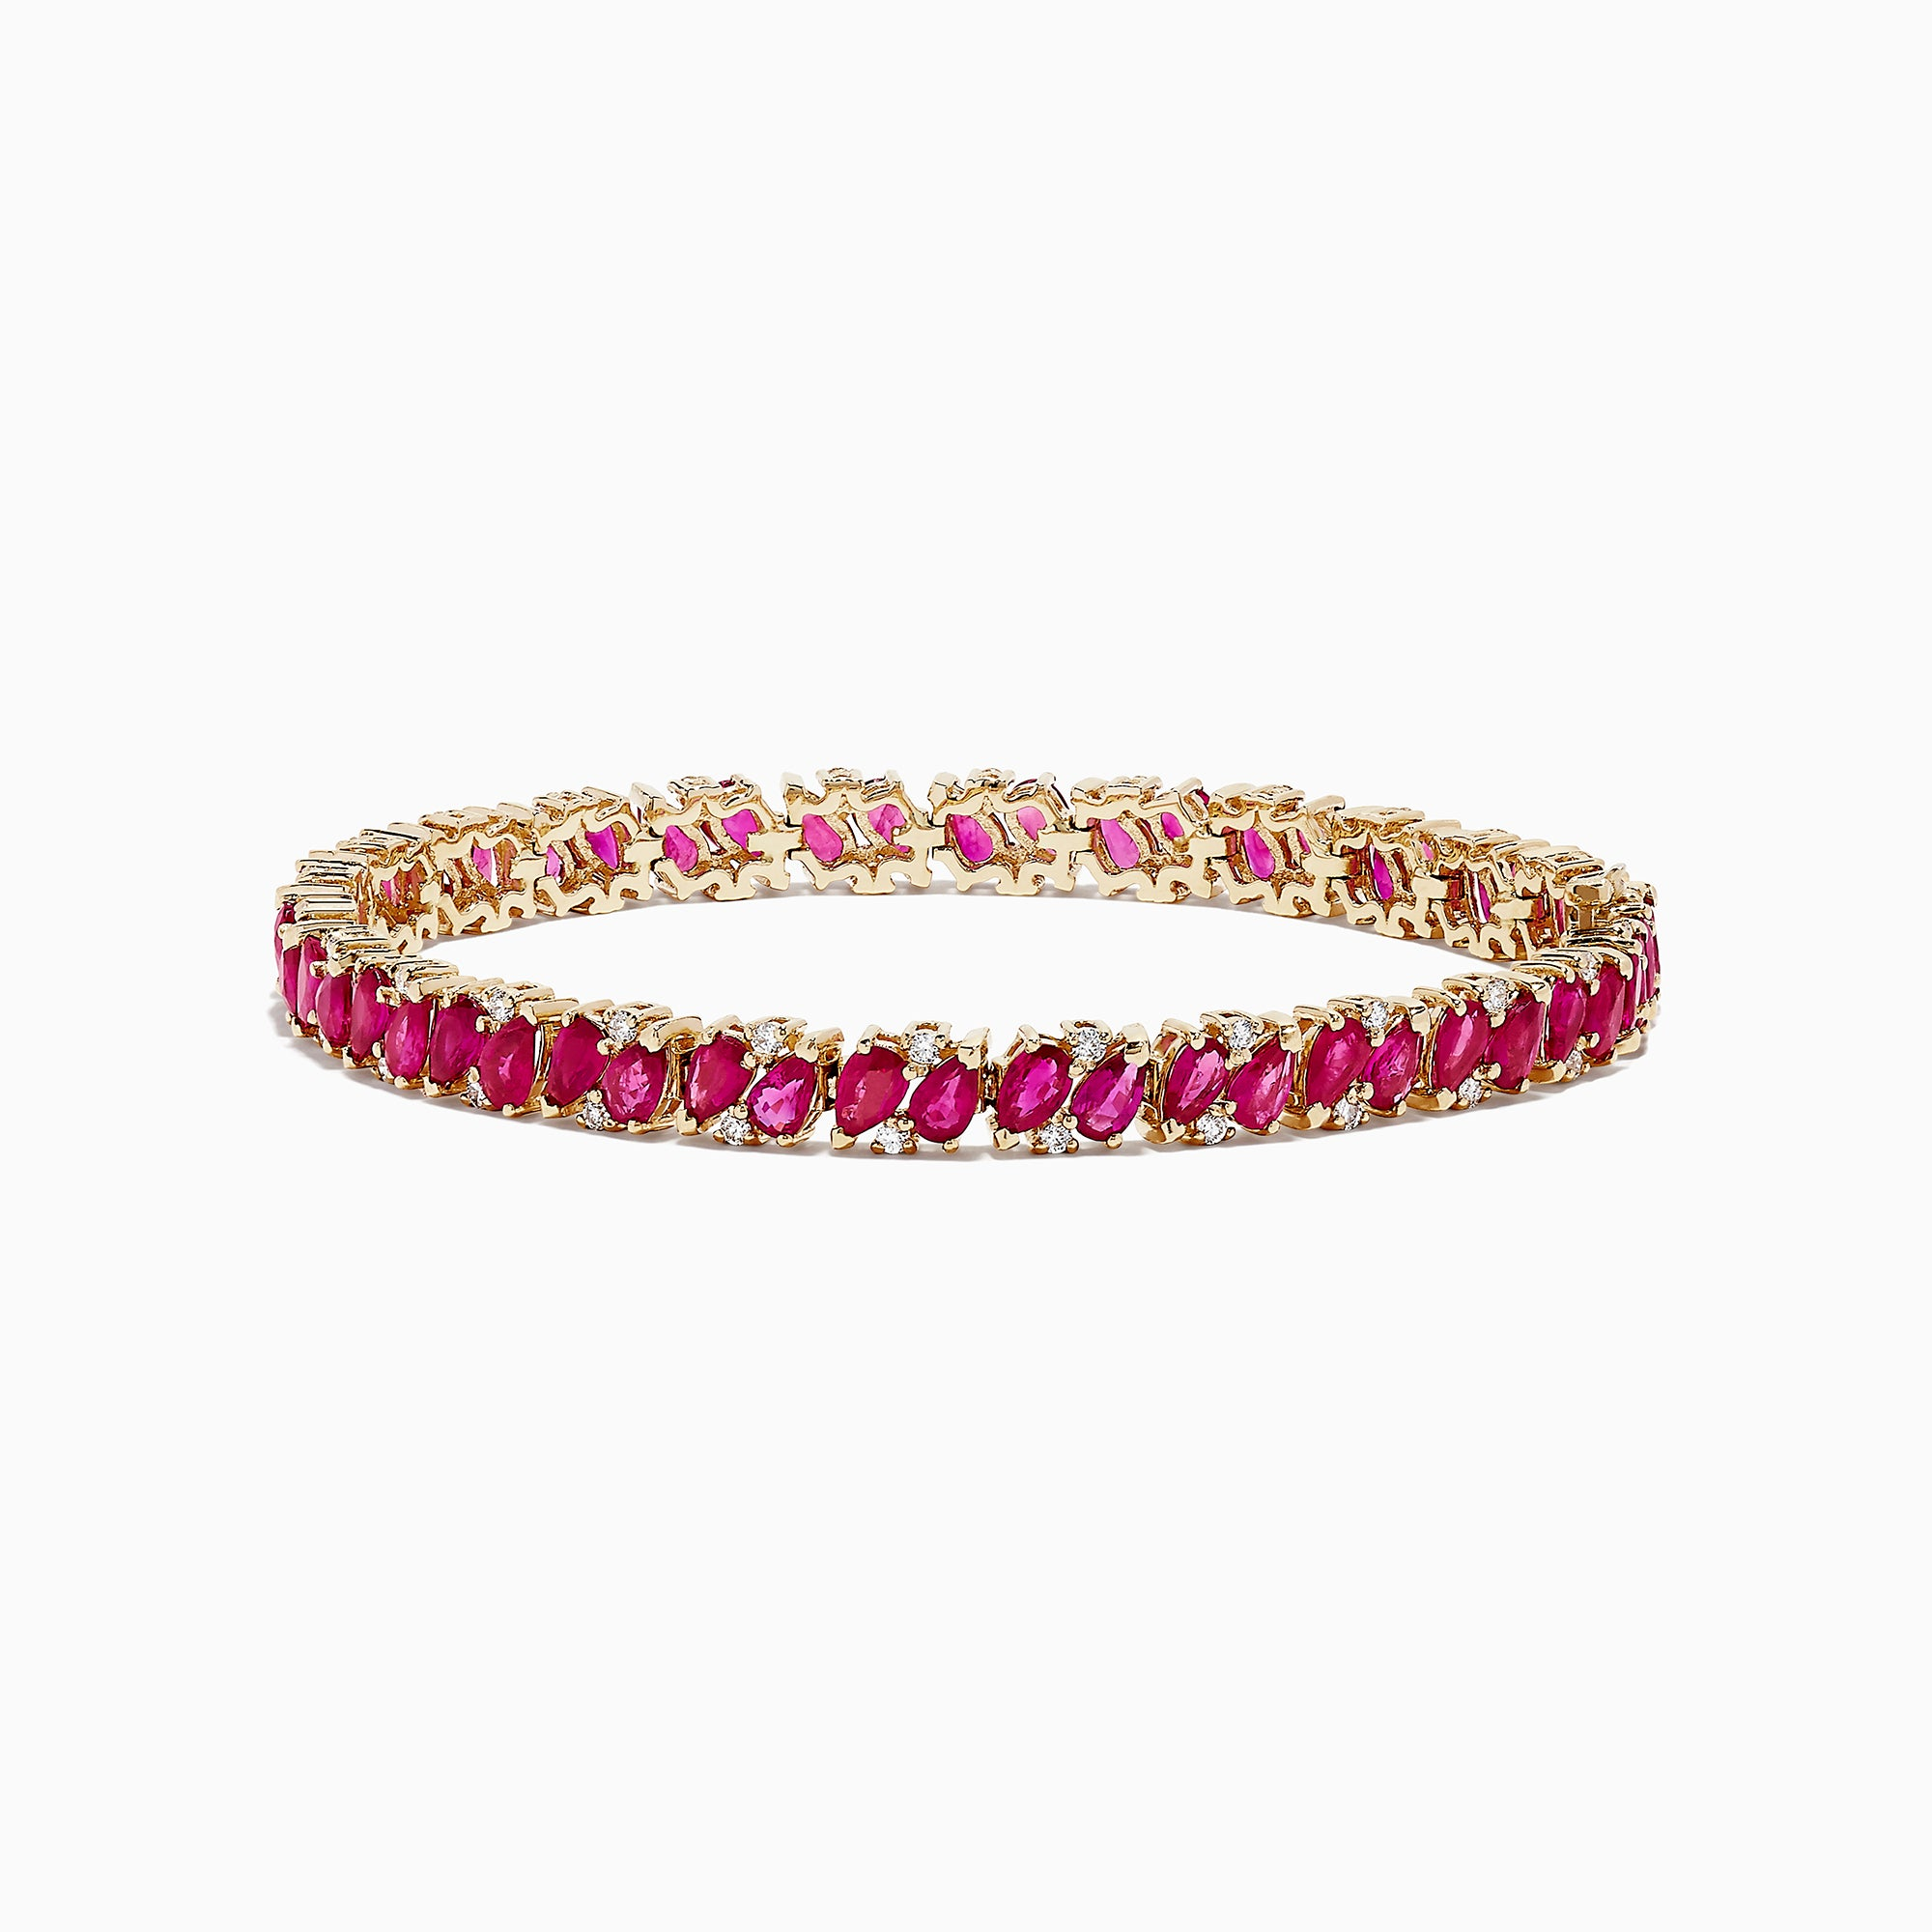 Effy Ruby Royale 14K Gold Ruby and Diamond Tennis Bracelet, 15.58 TCW